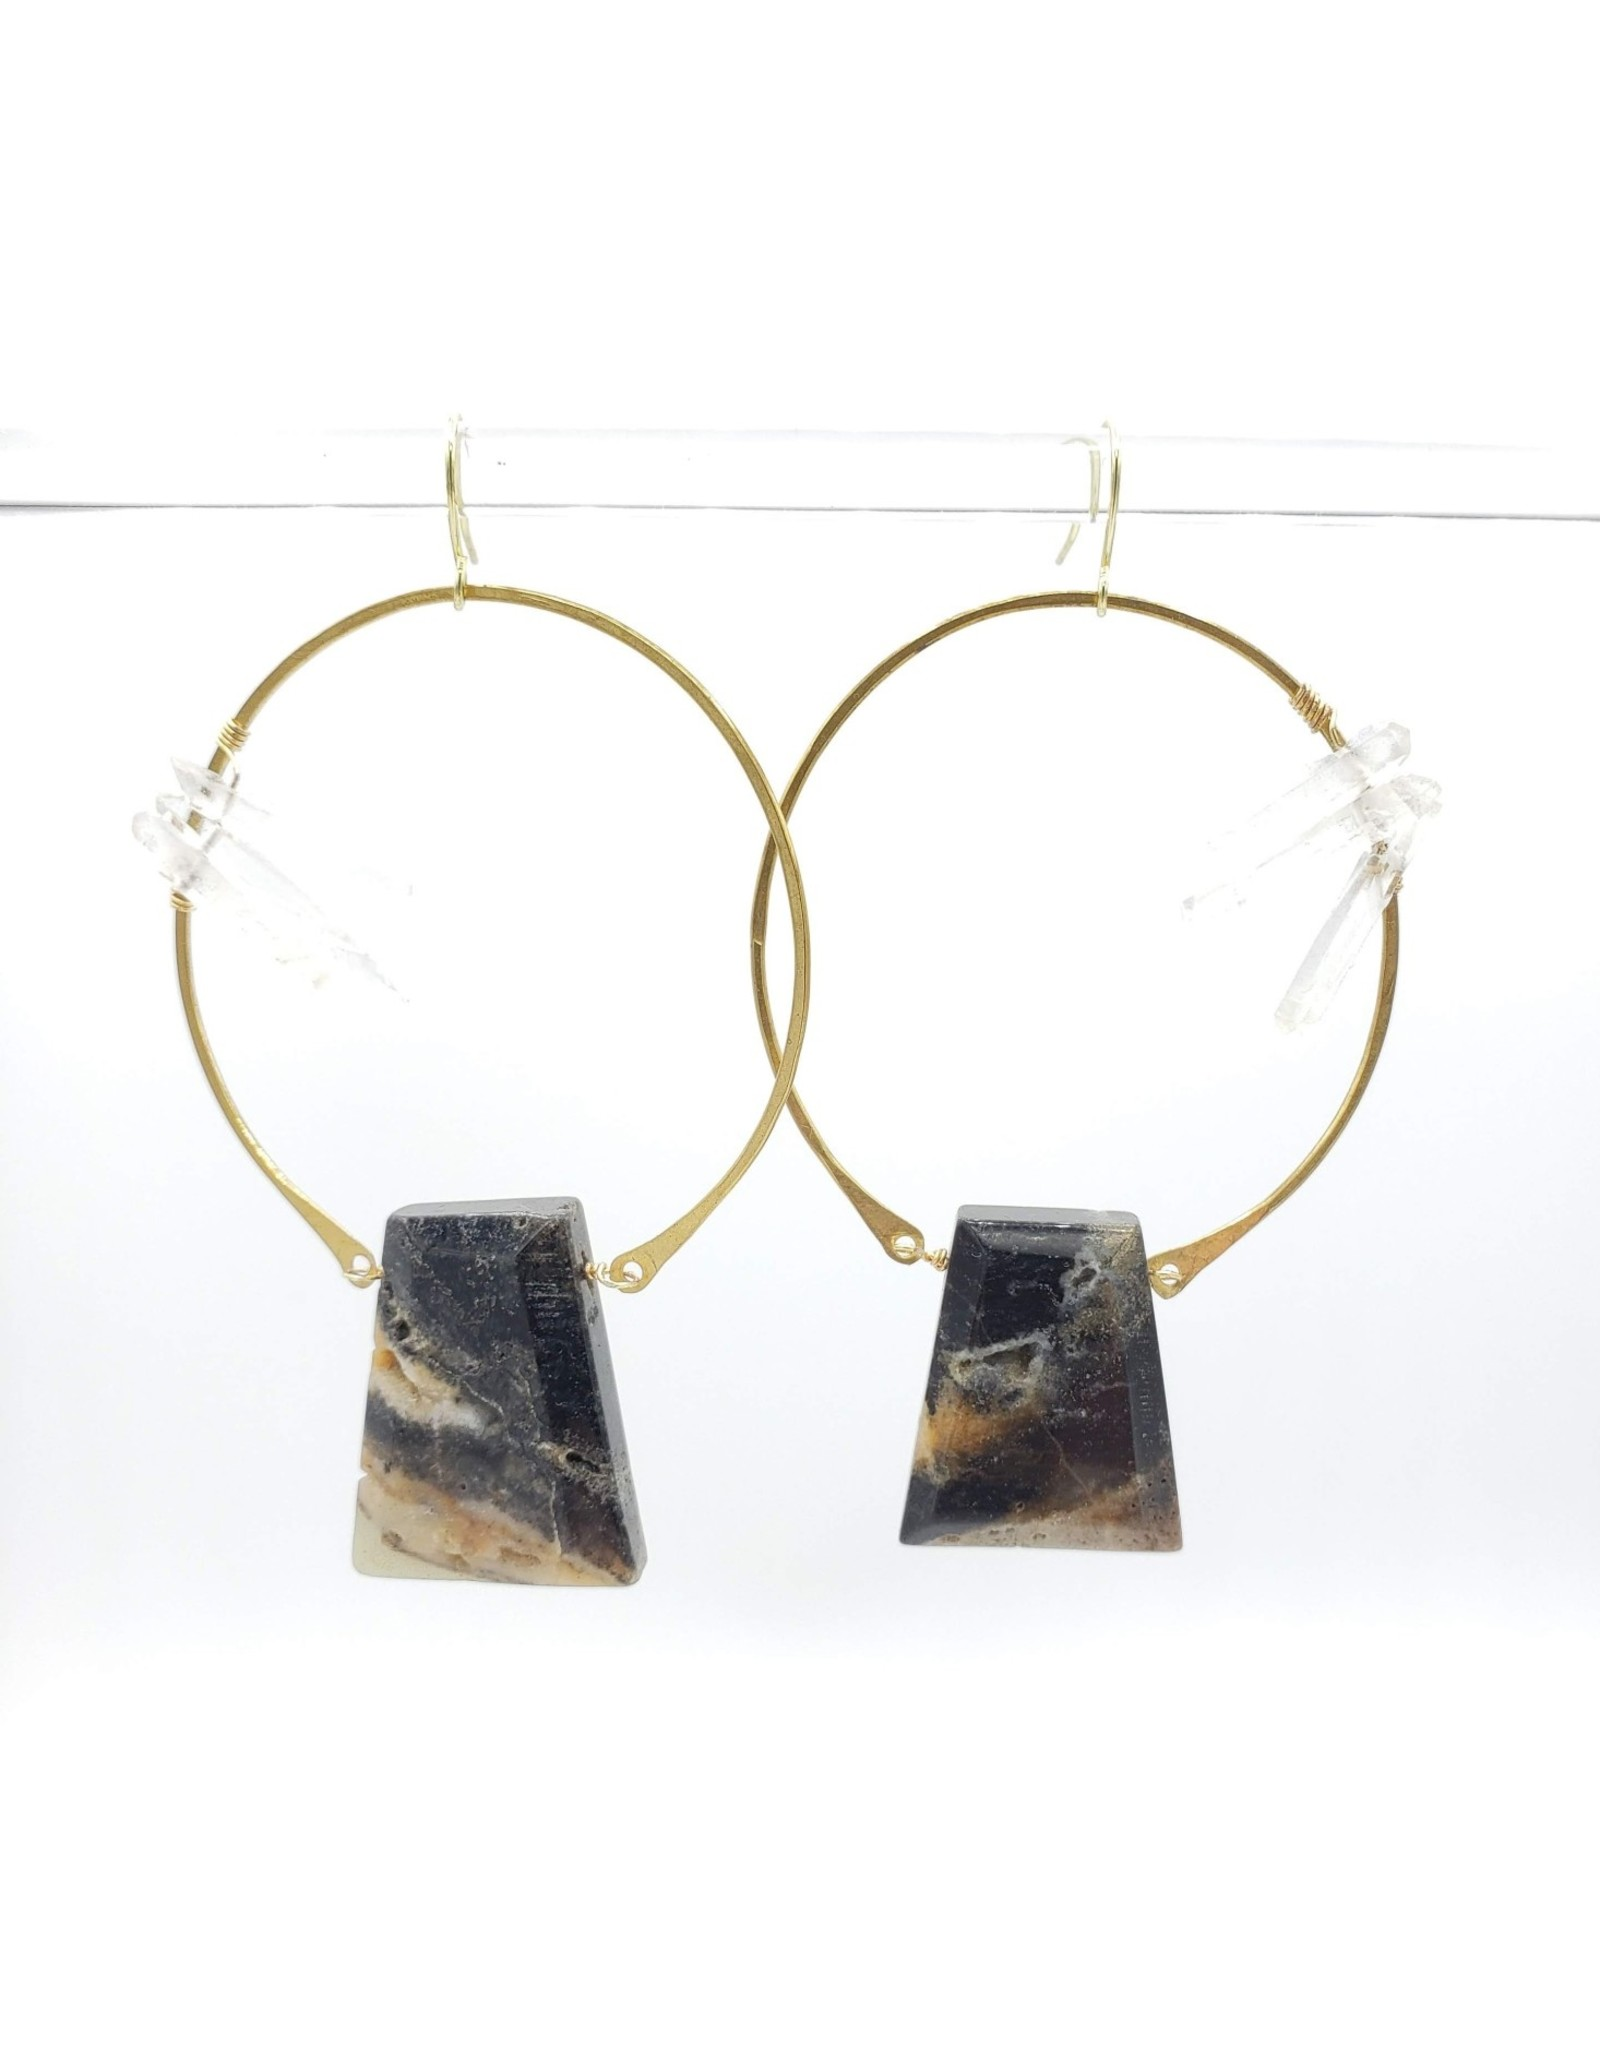 Kirsten Elise Jewelry Large Circle Earring with Crystal Spears and Agate Trapezium